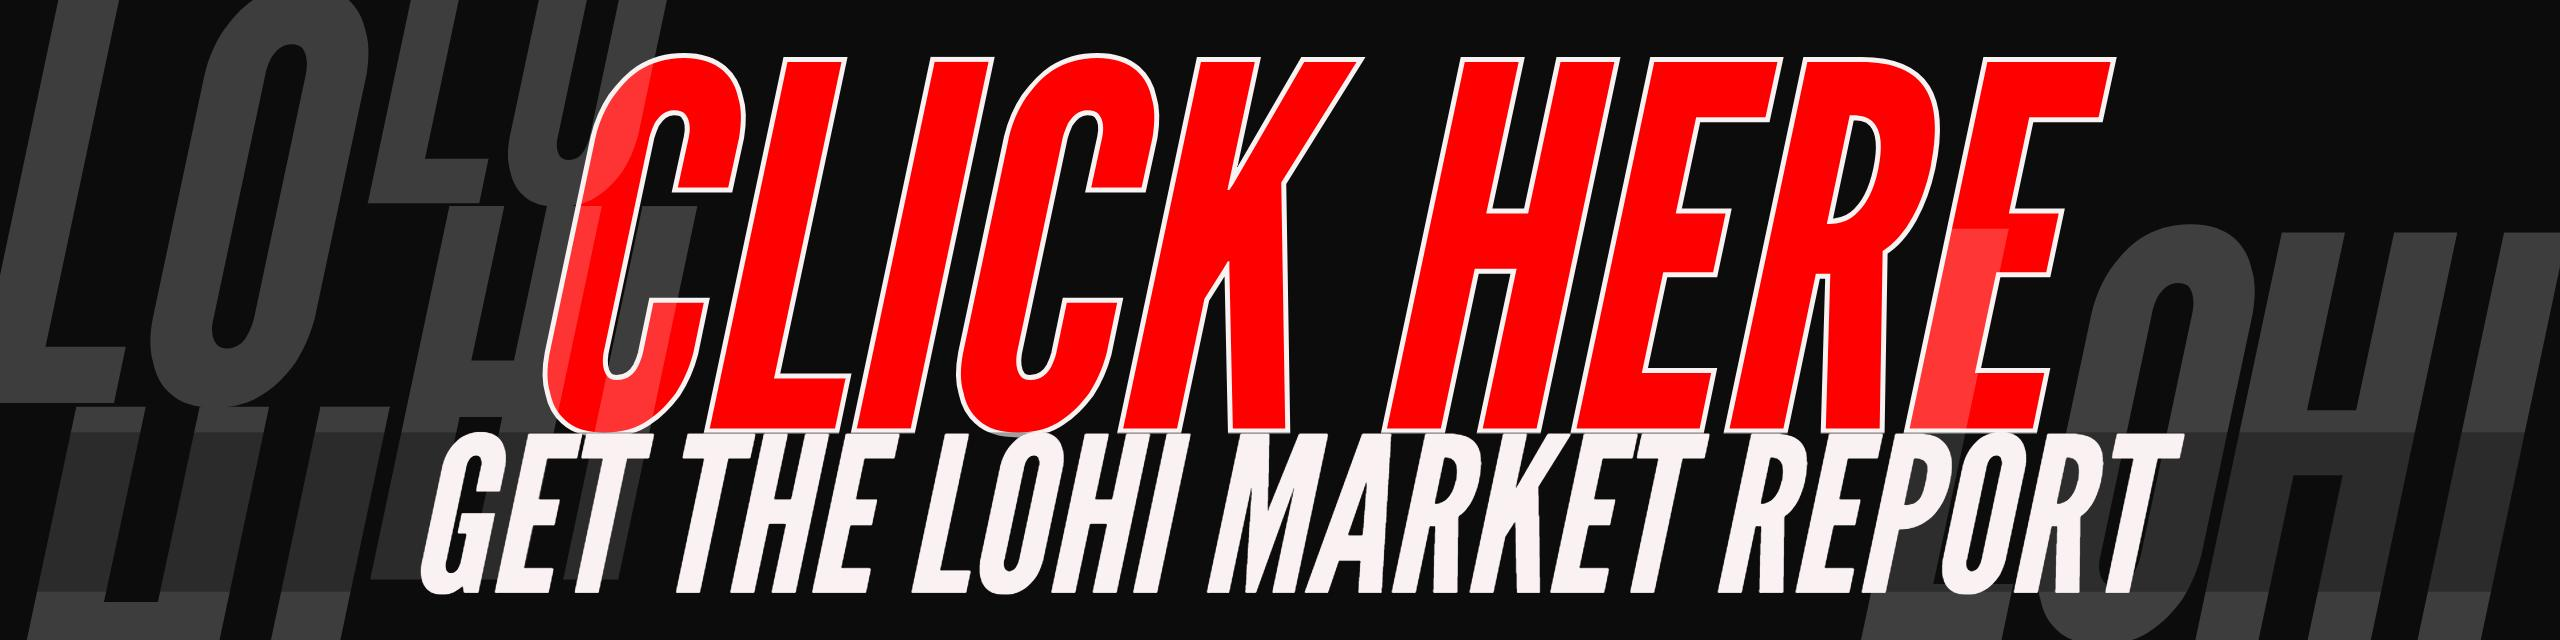 Get LoHi Market Report Now